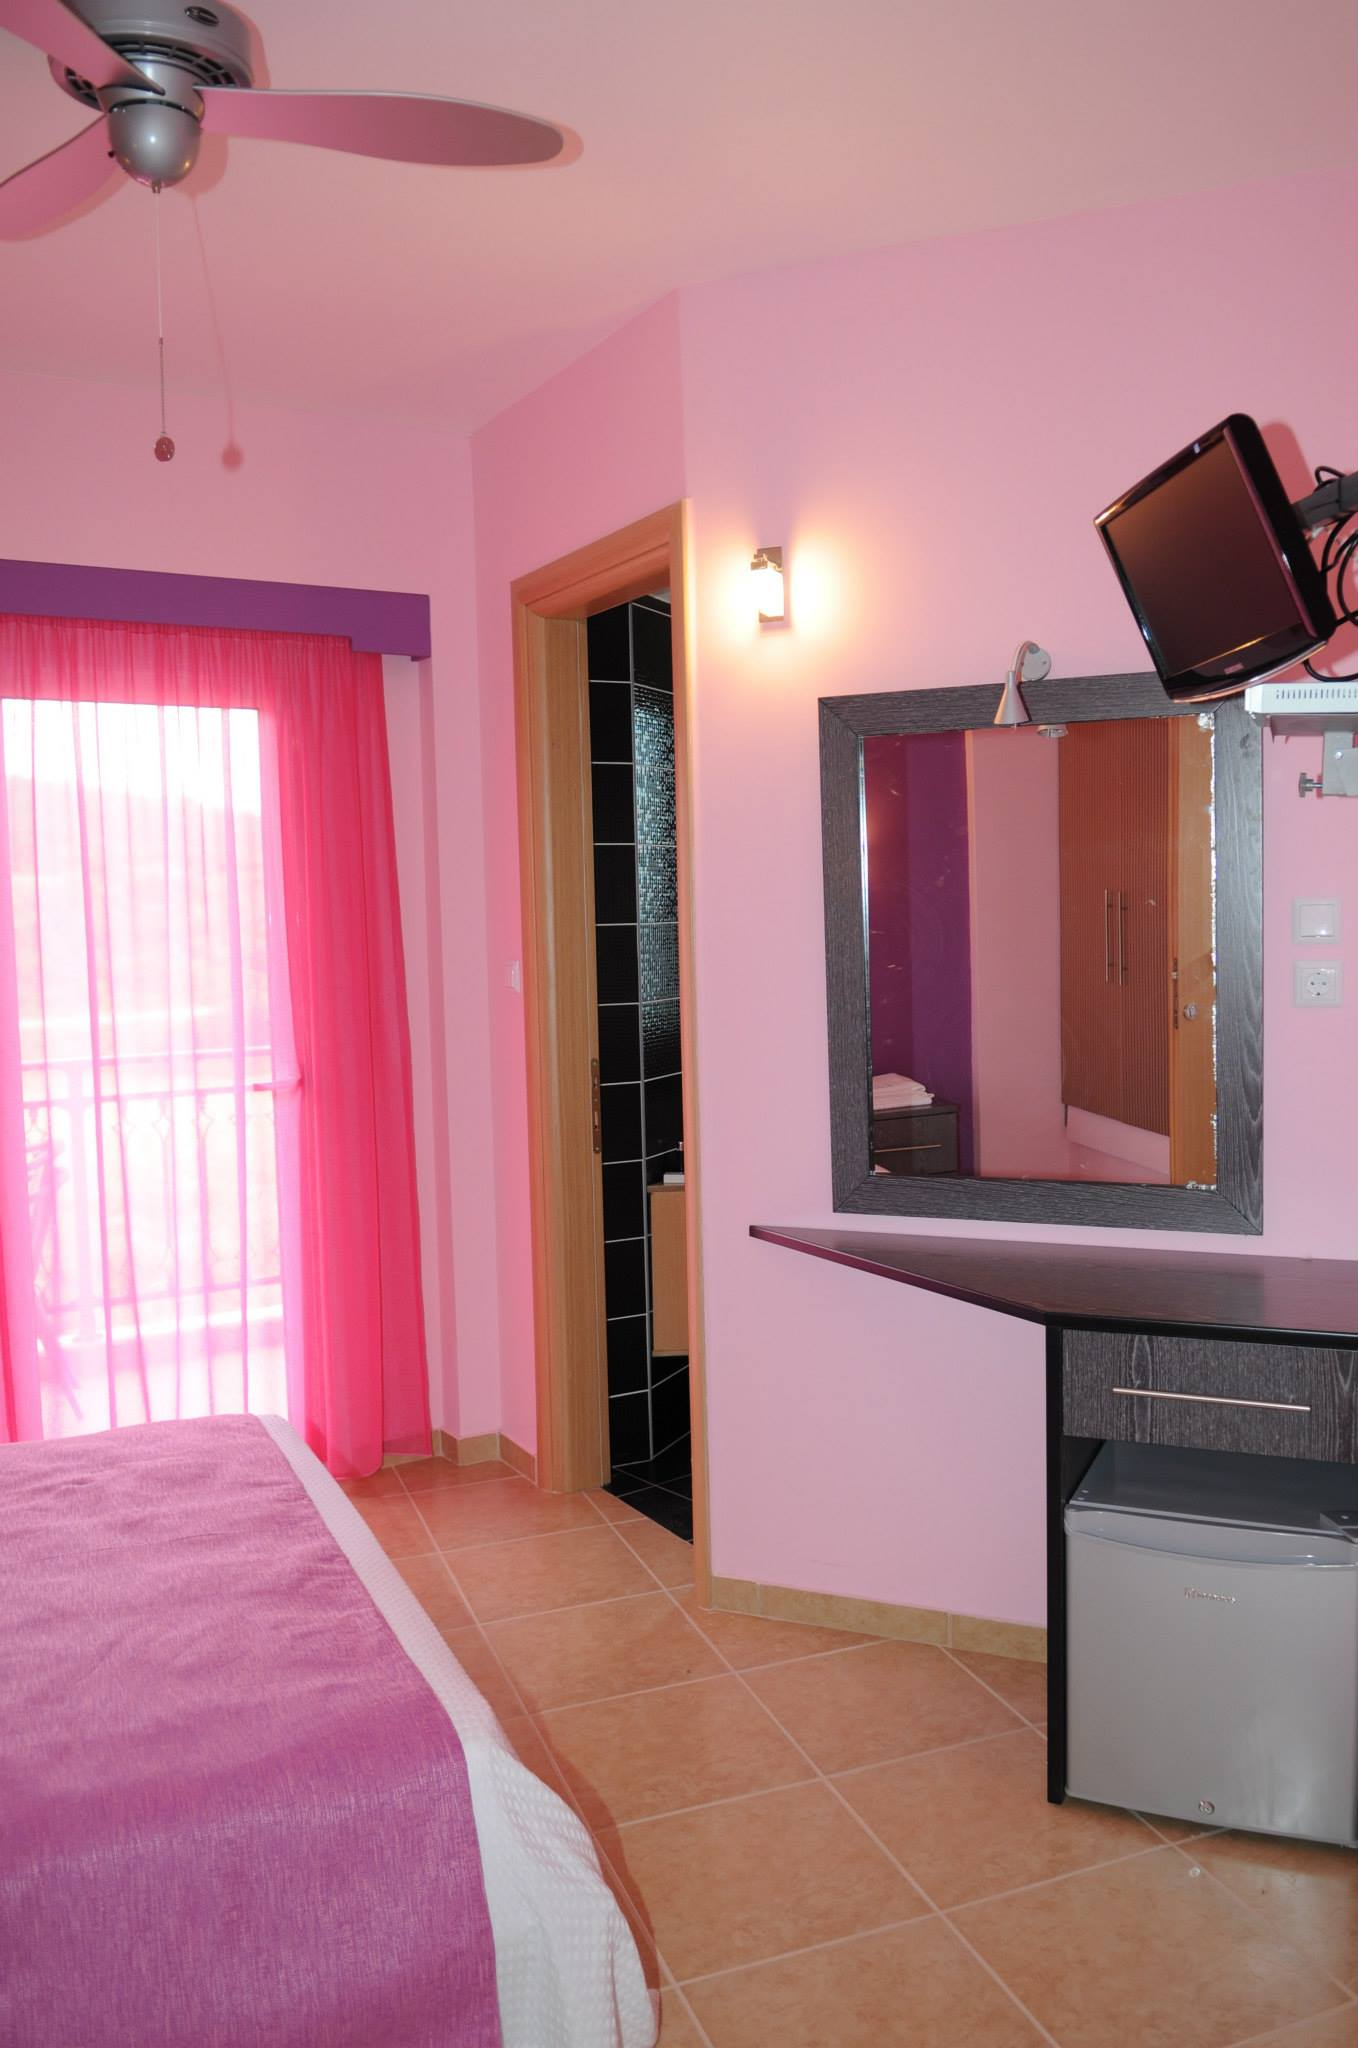 greenotel studios and apartmets sithonia room no. 2 (2)